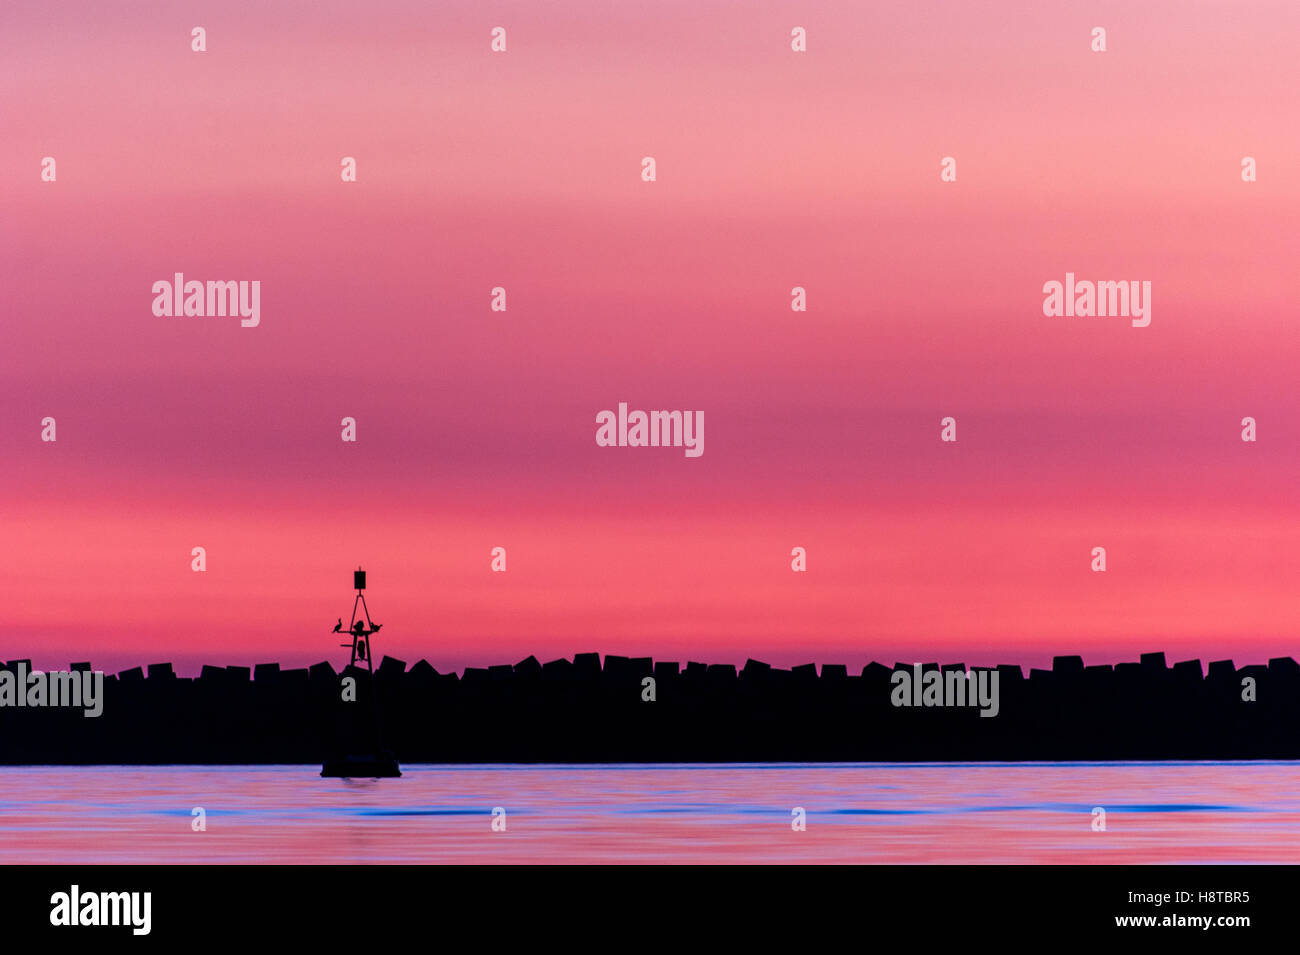 Magenta sunset with birds perched on a lighthouse - Stock Image